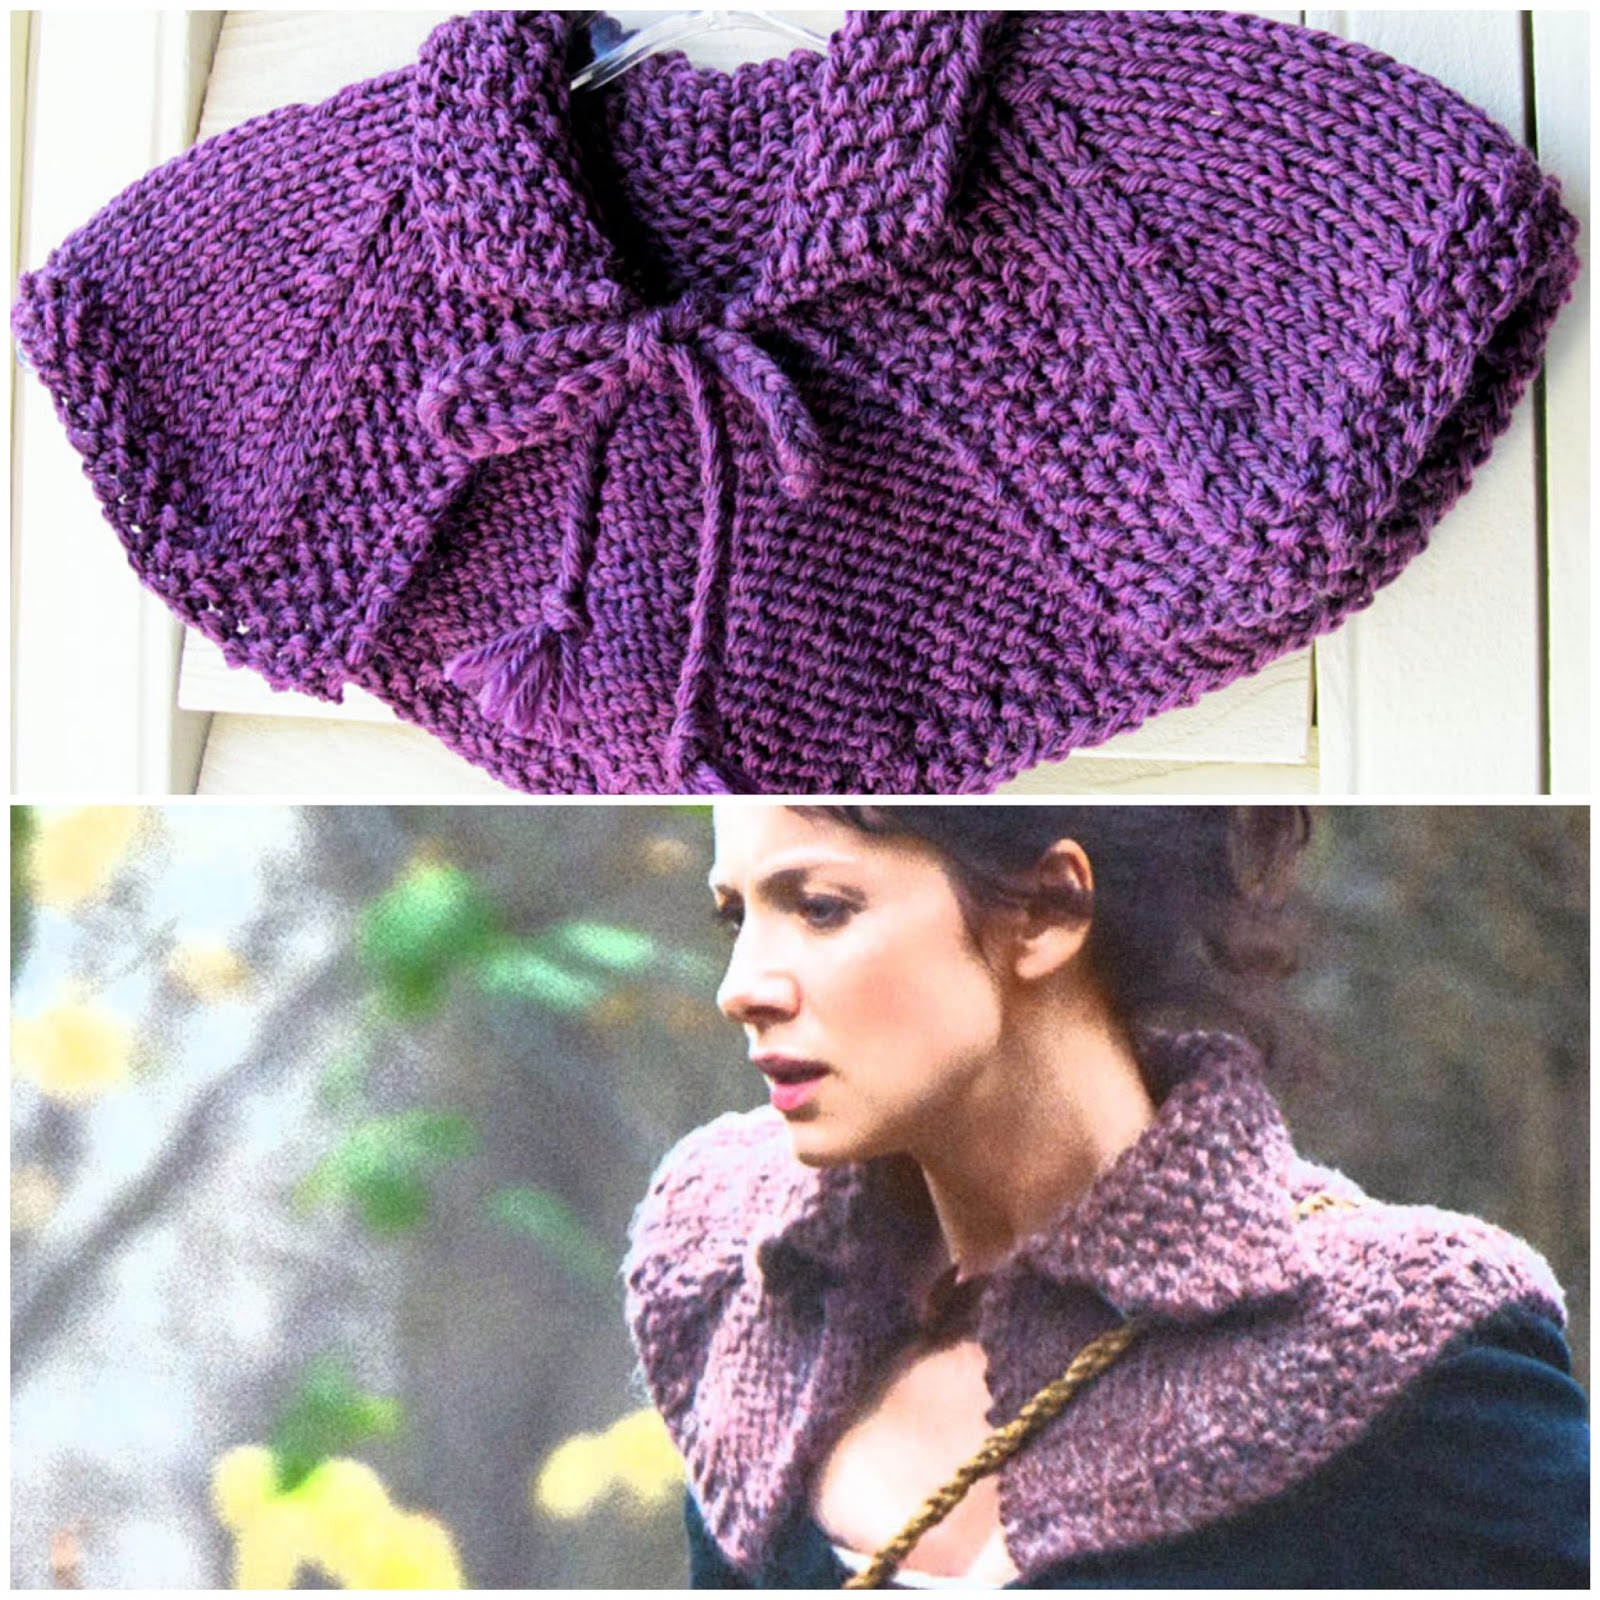 Knitzyblonde my knitting patterns the pattern comes with 3 different size options to the knitting pattern and a tutorial on how to hand felt the tam after knitting bankloansurffo Images